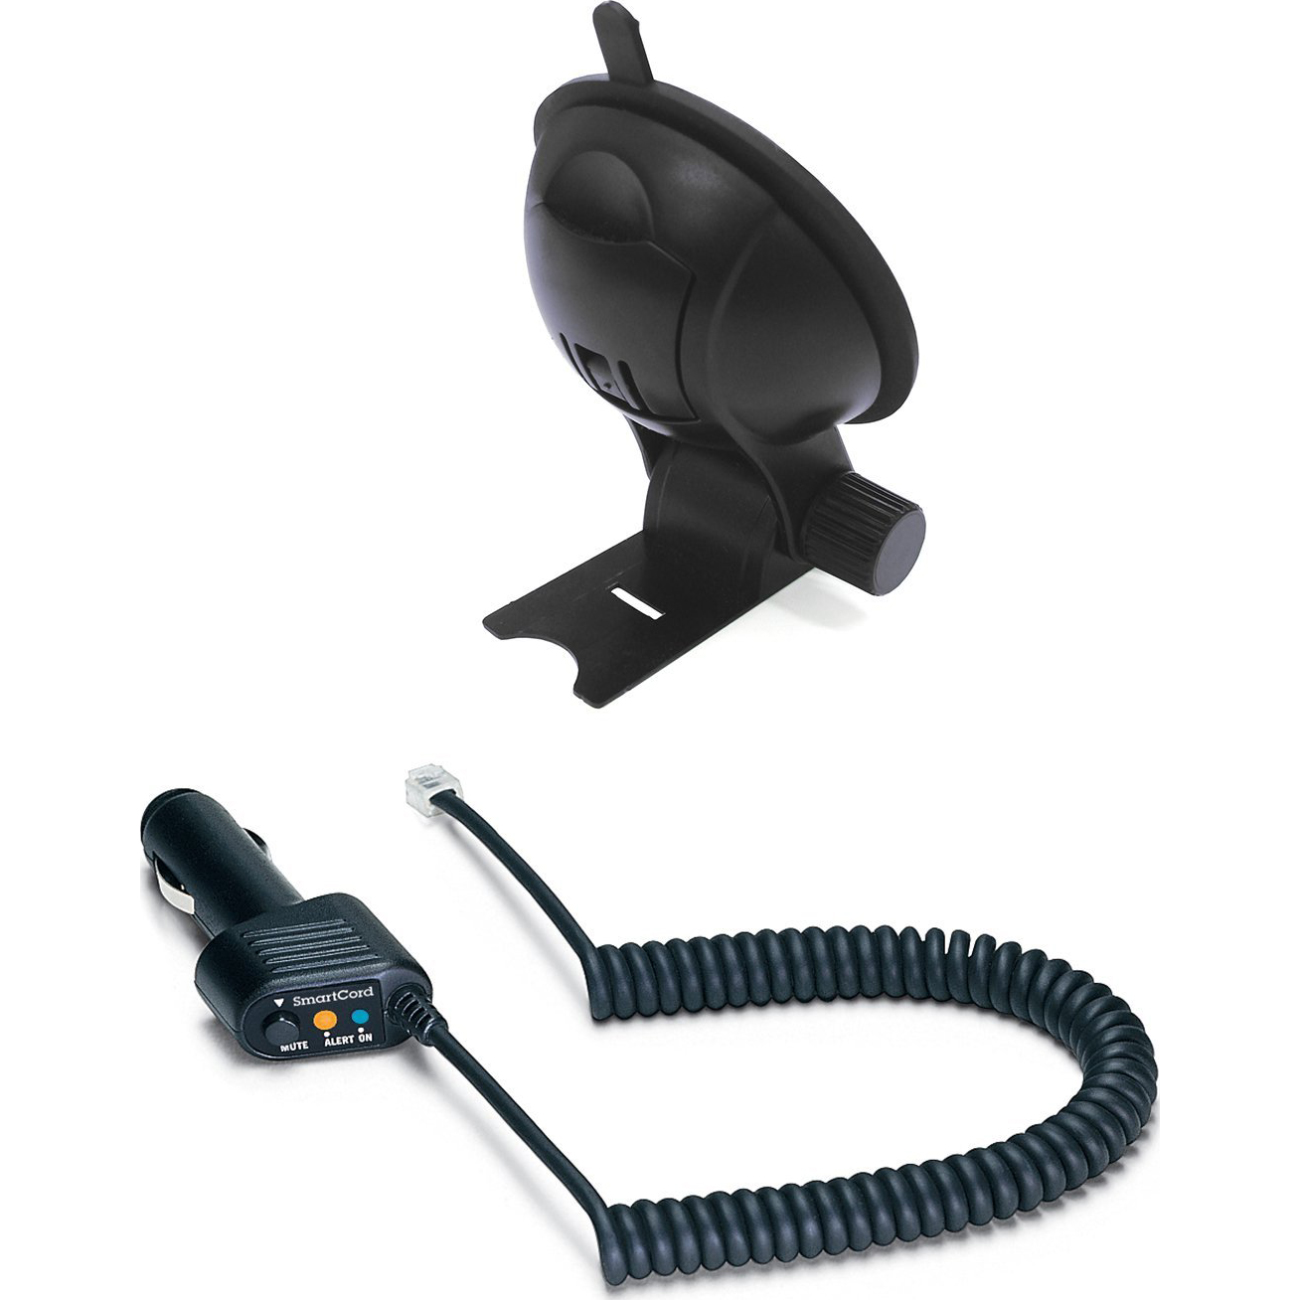 Escort Accessories Combo with StickyCup Mount and Deluxe SmartCord (Blue Light)